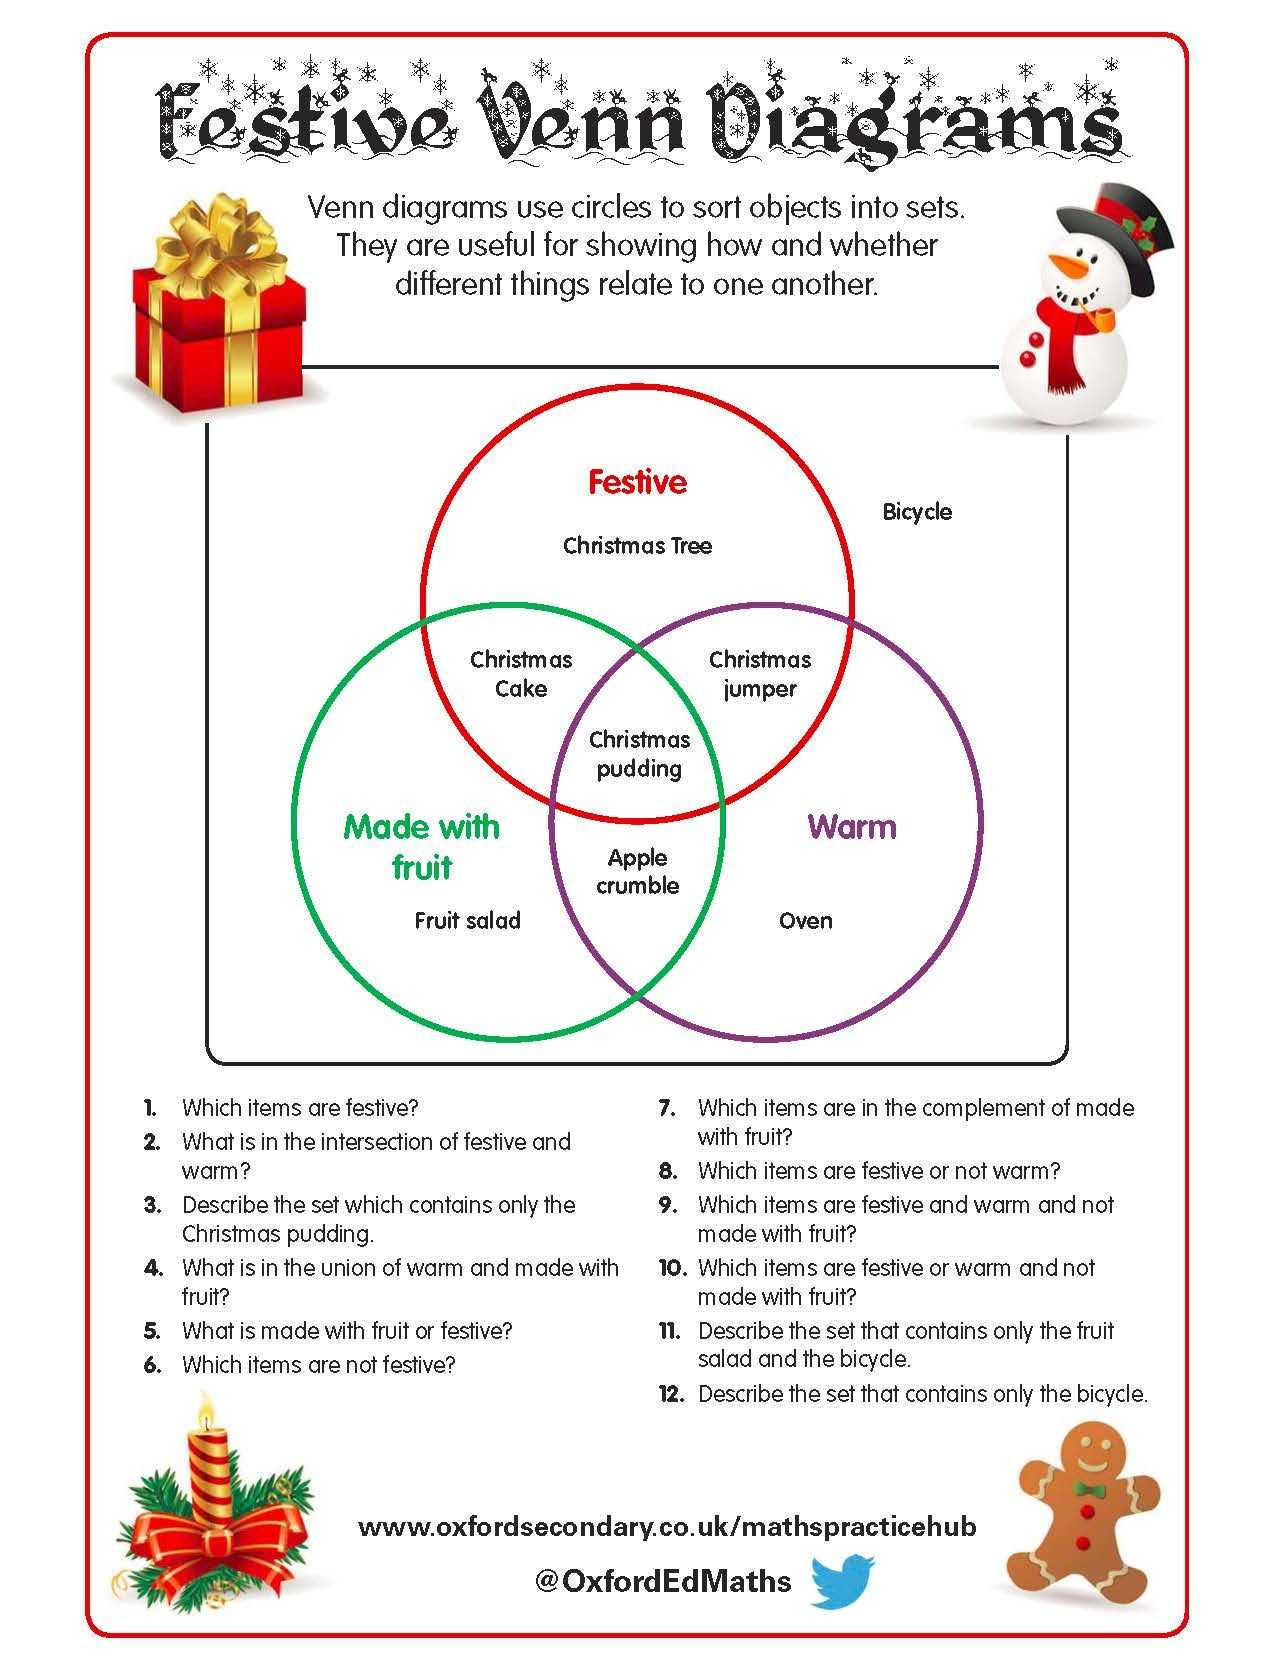 Arithmetic Sequence Worksheet together with This Christmas themed Worksheet Features Venn Diagrams with Fun